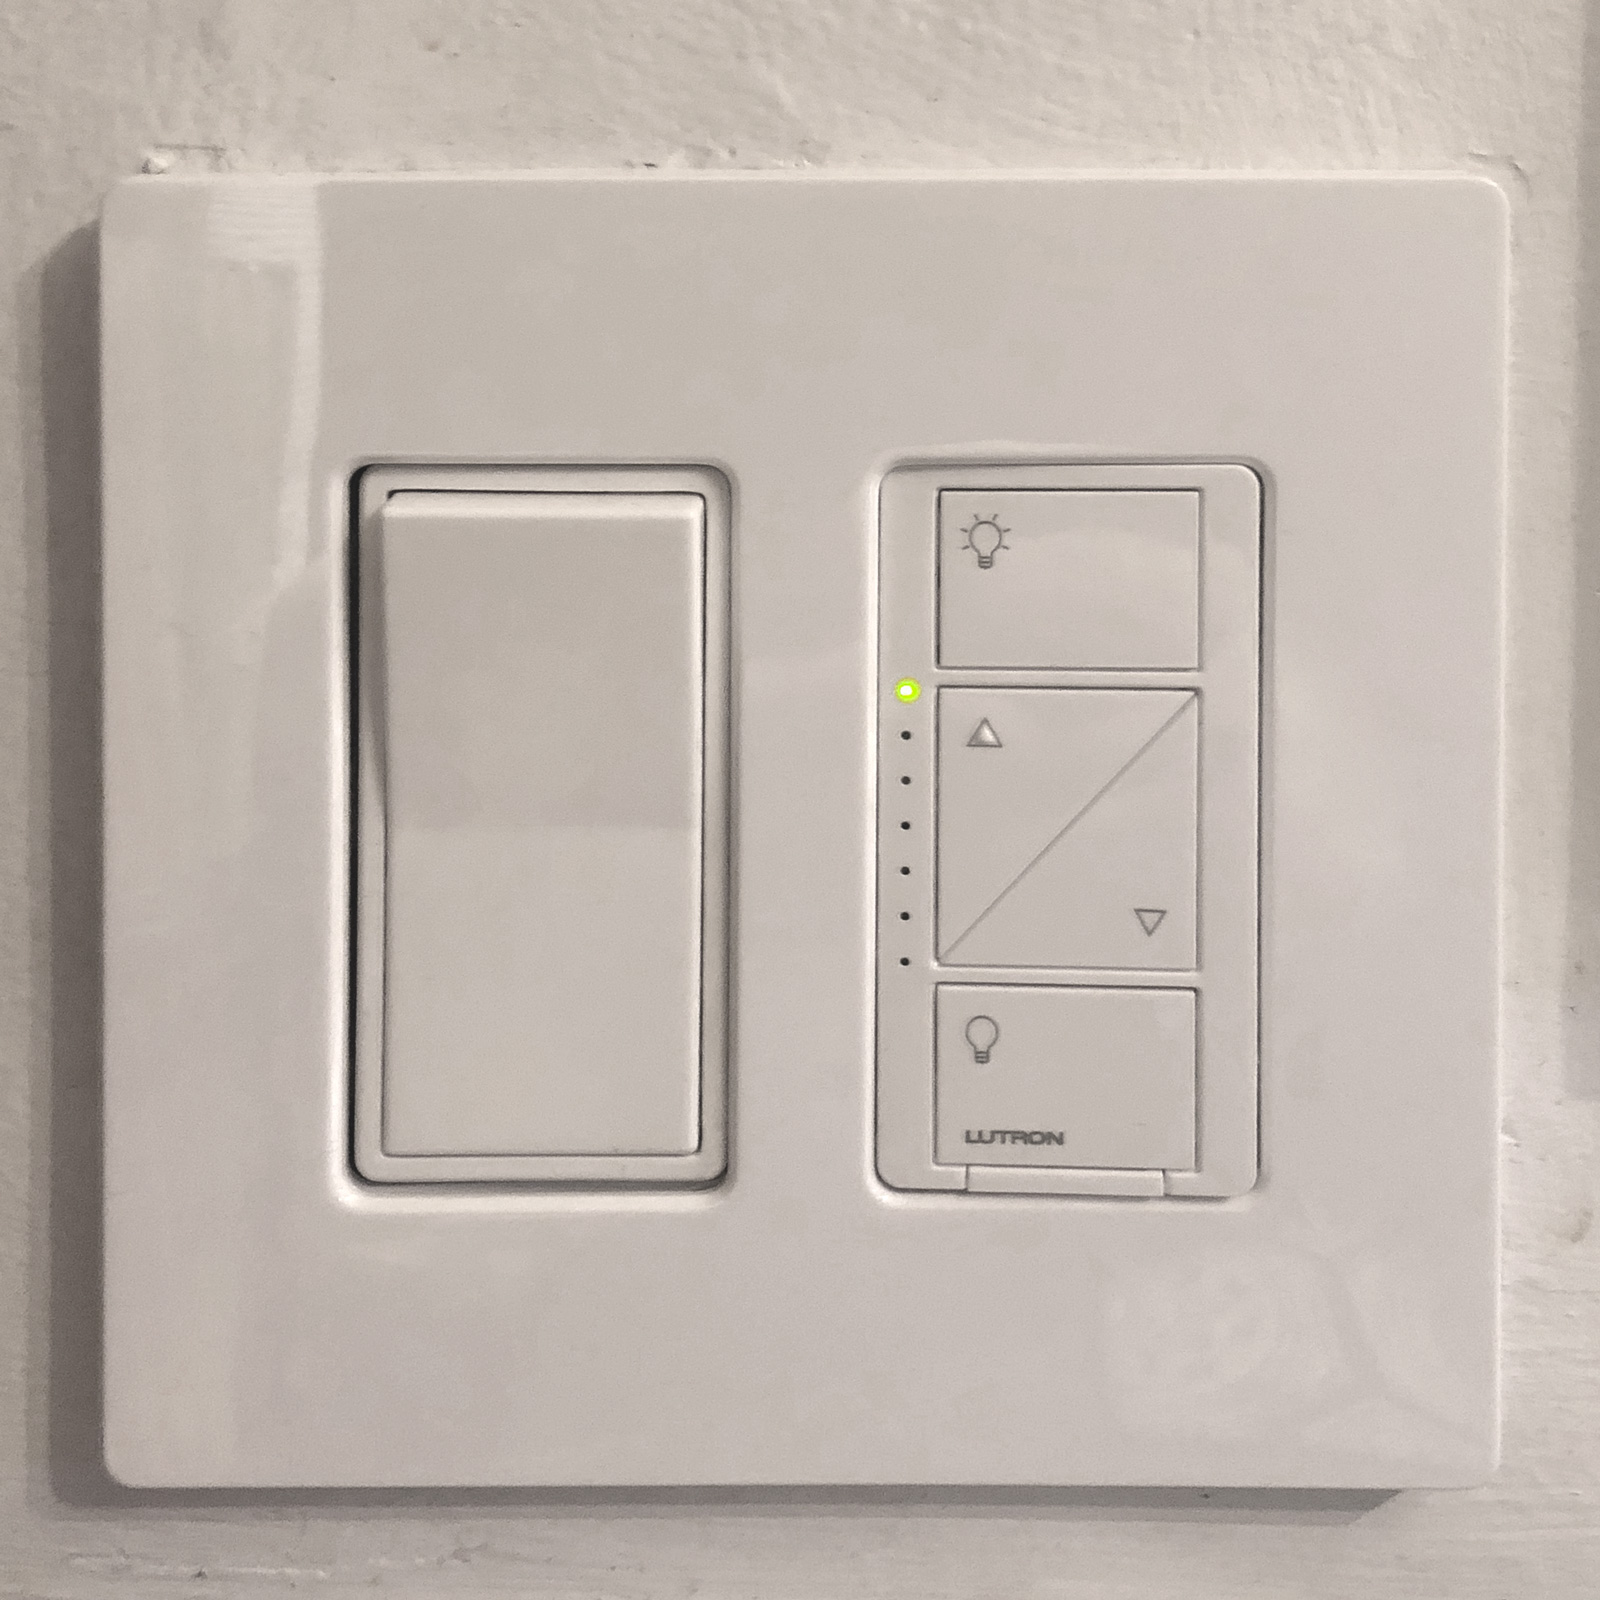 Lutron Dimmer Switch Wiring